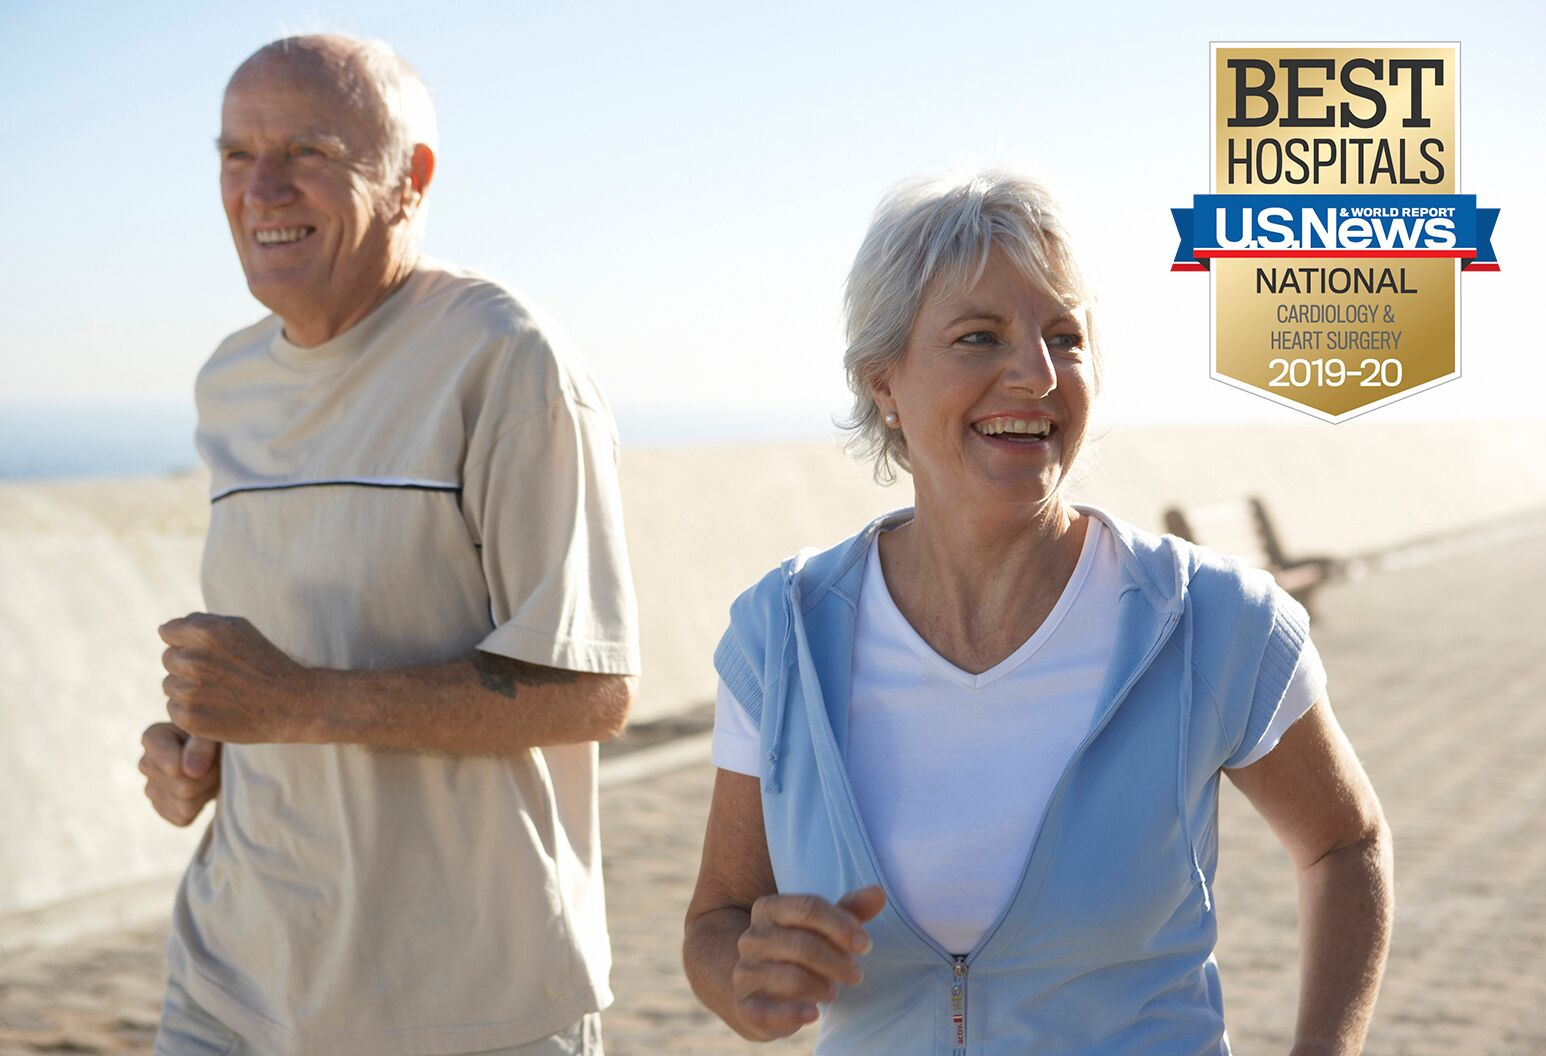 Older man and woman are smiling as they go for brisk walk along beach.